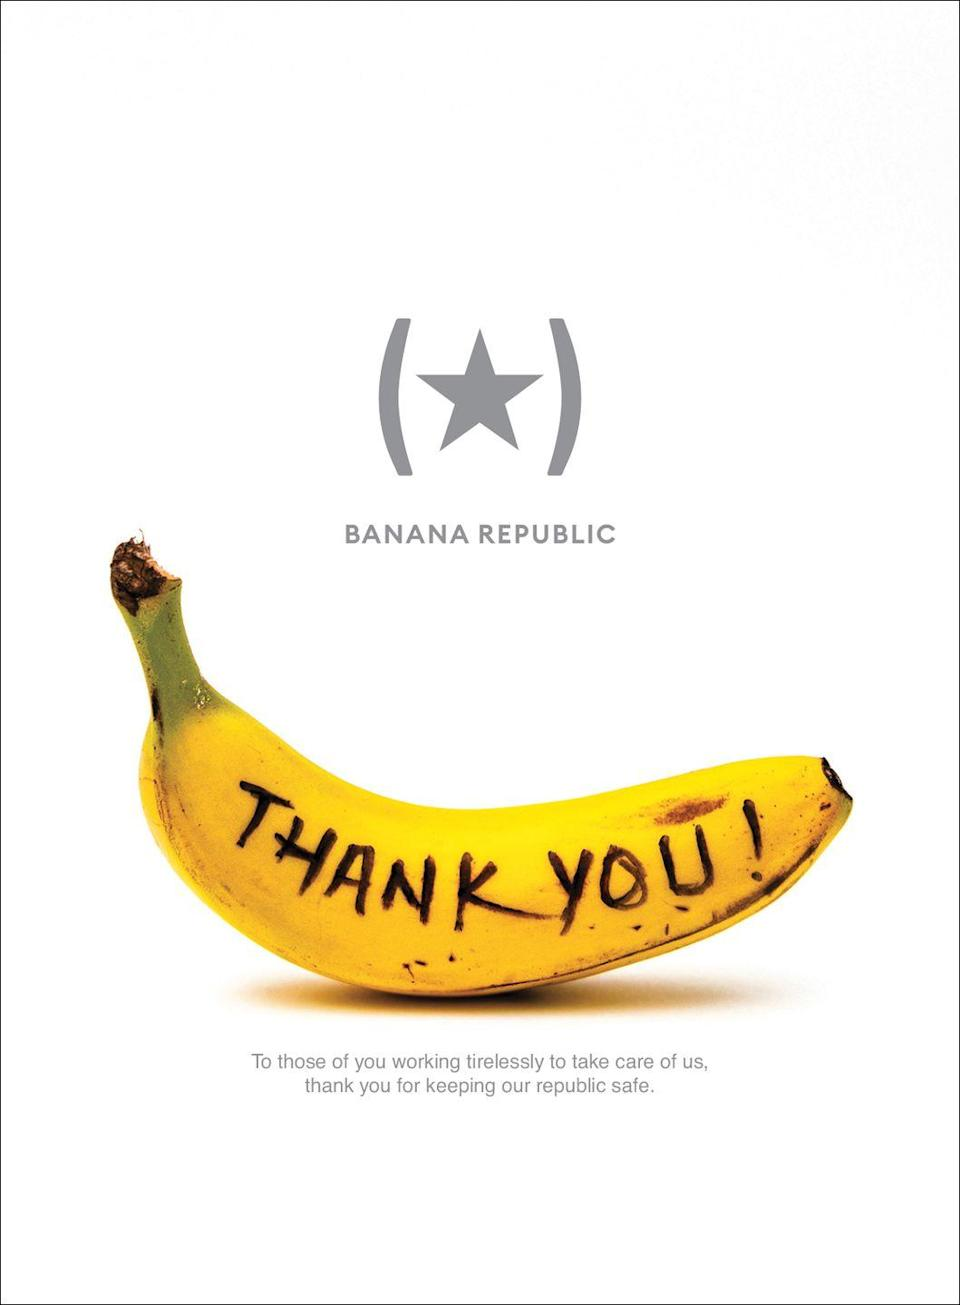 <p>Thank you! To those of you working tirelessly to take care of us, thank you for keeping our republic safe.</p>